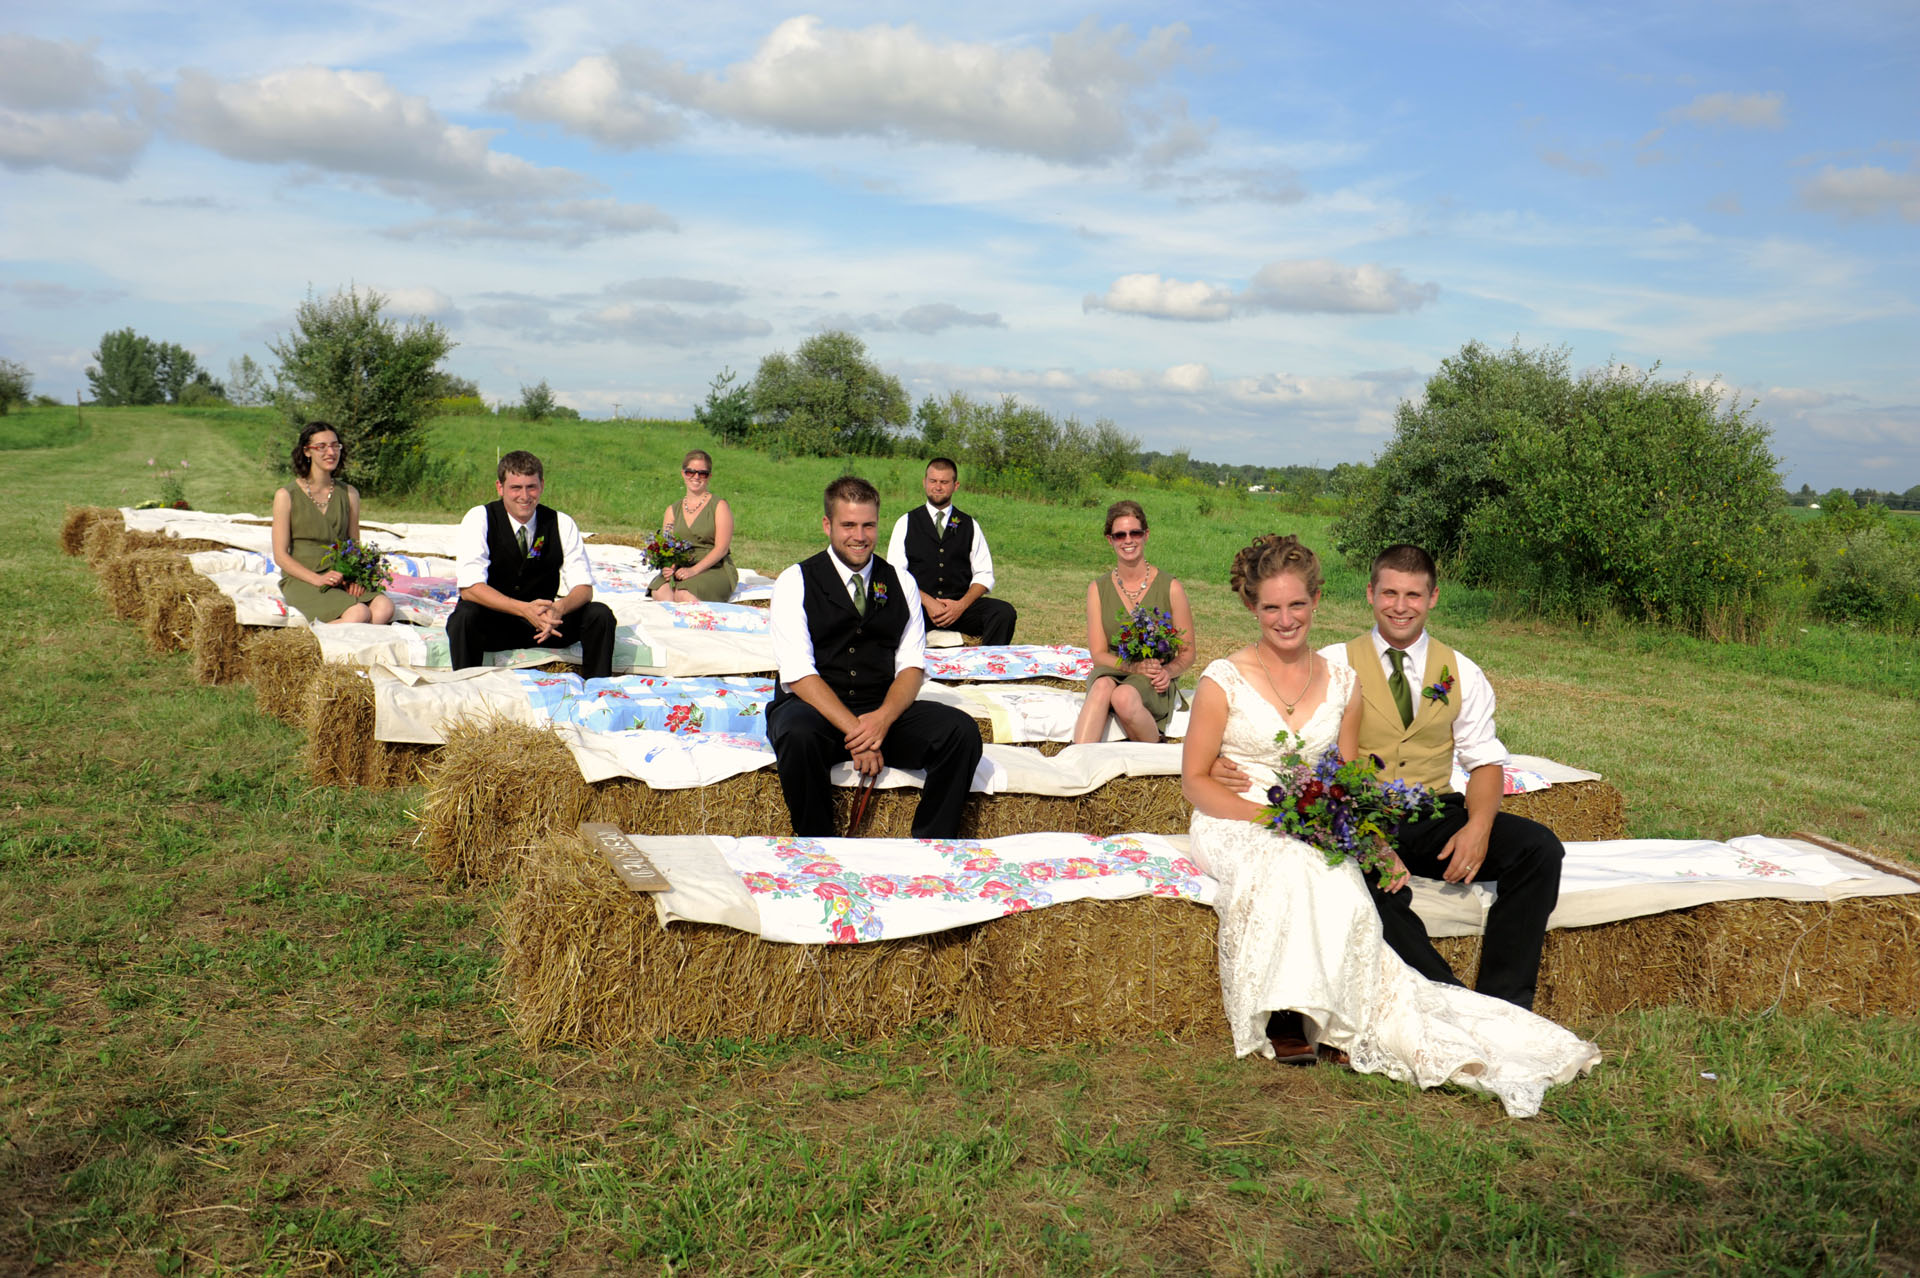 Michigan country wedding wedding photographer took a photo of the wedding party sitting on the covered hay bales their guests had been sitting on minutes beforehand at a Michigan country wedding.